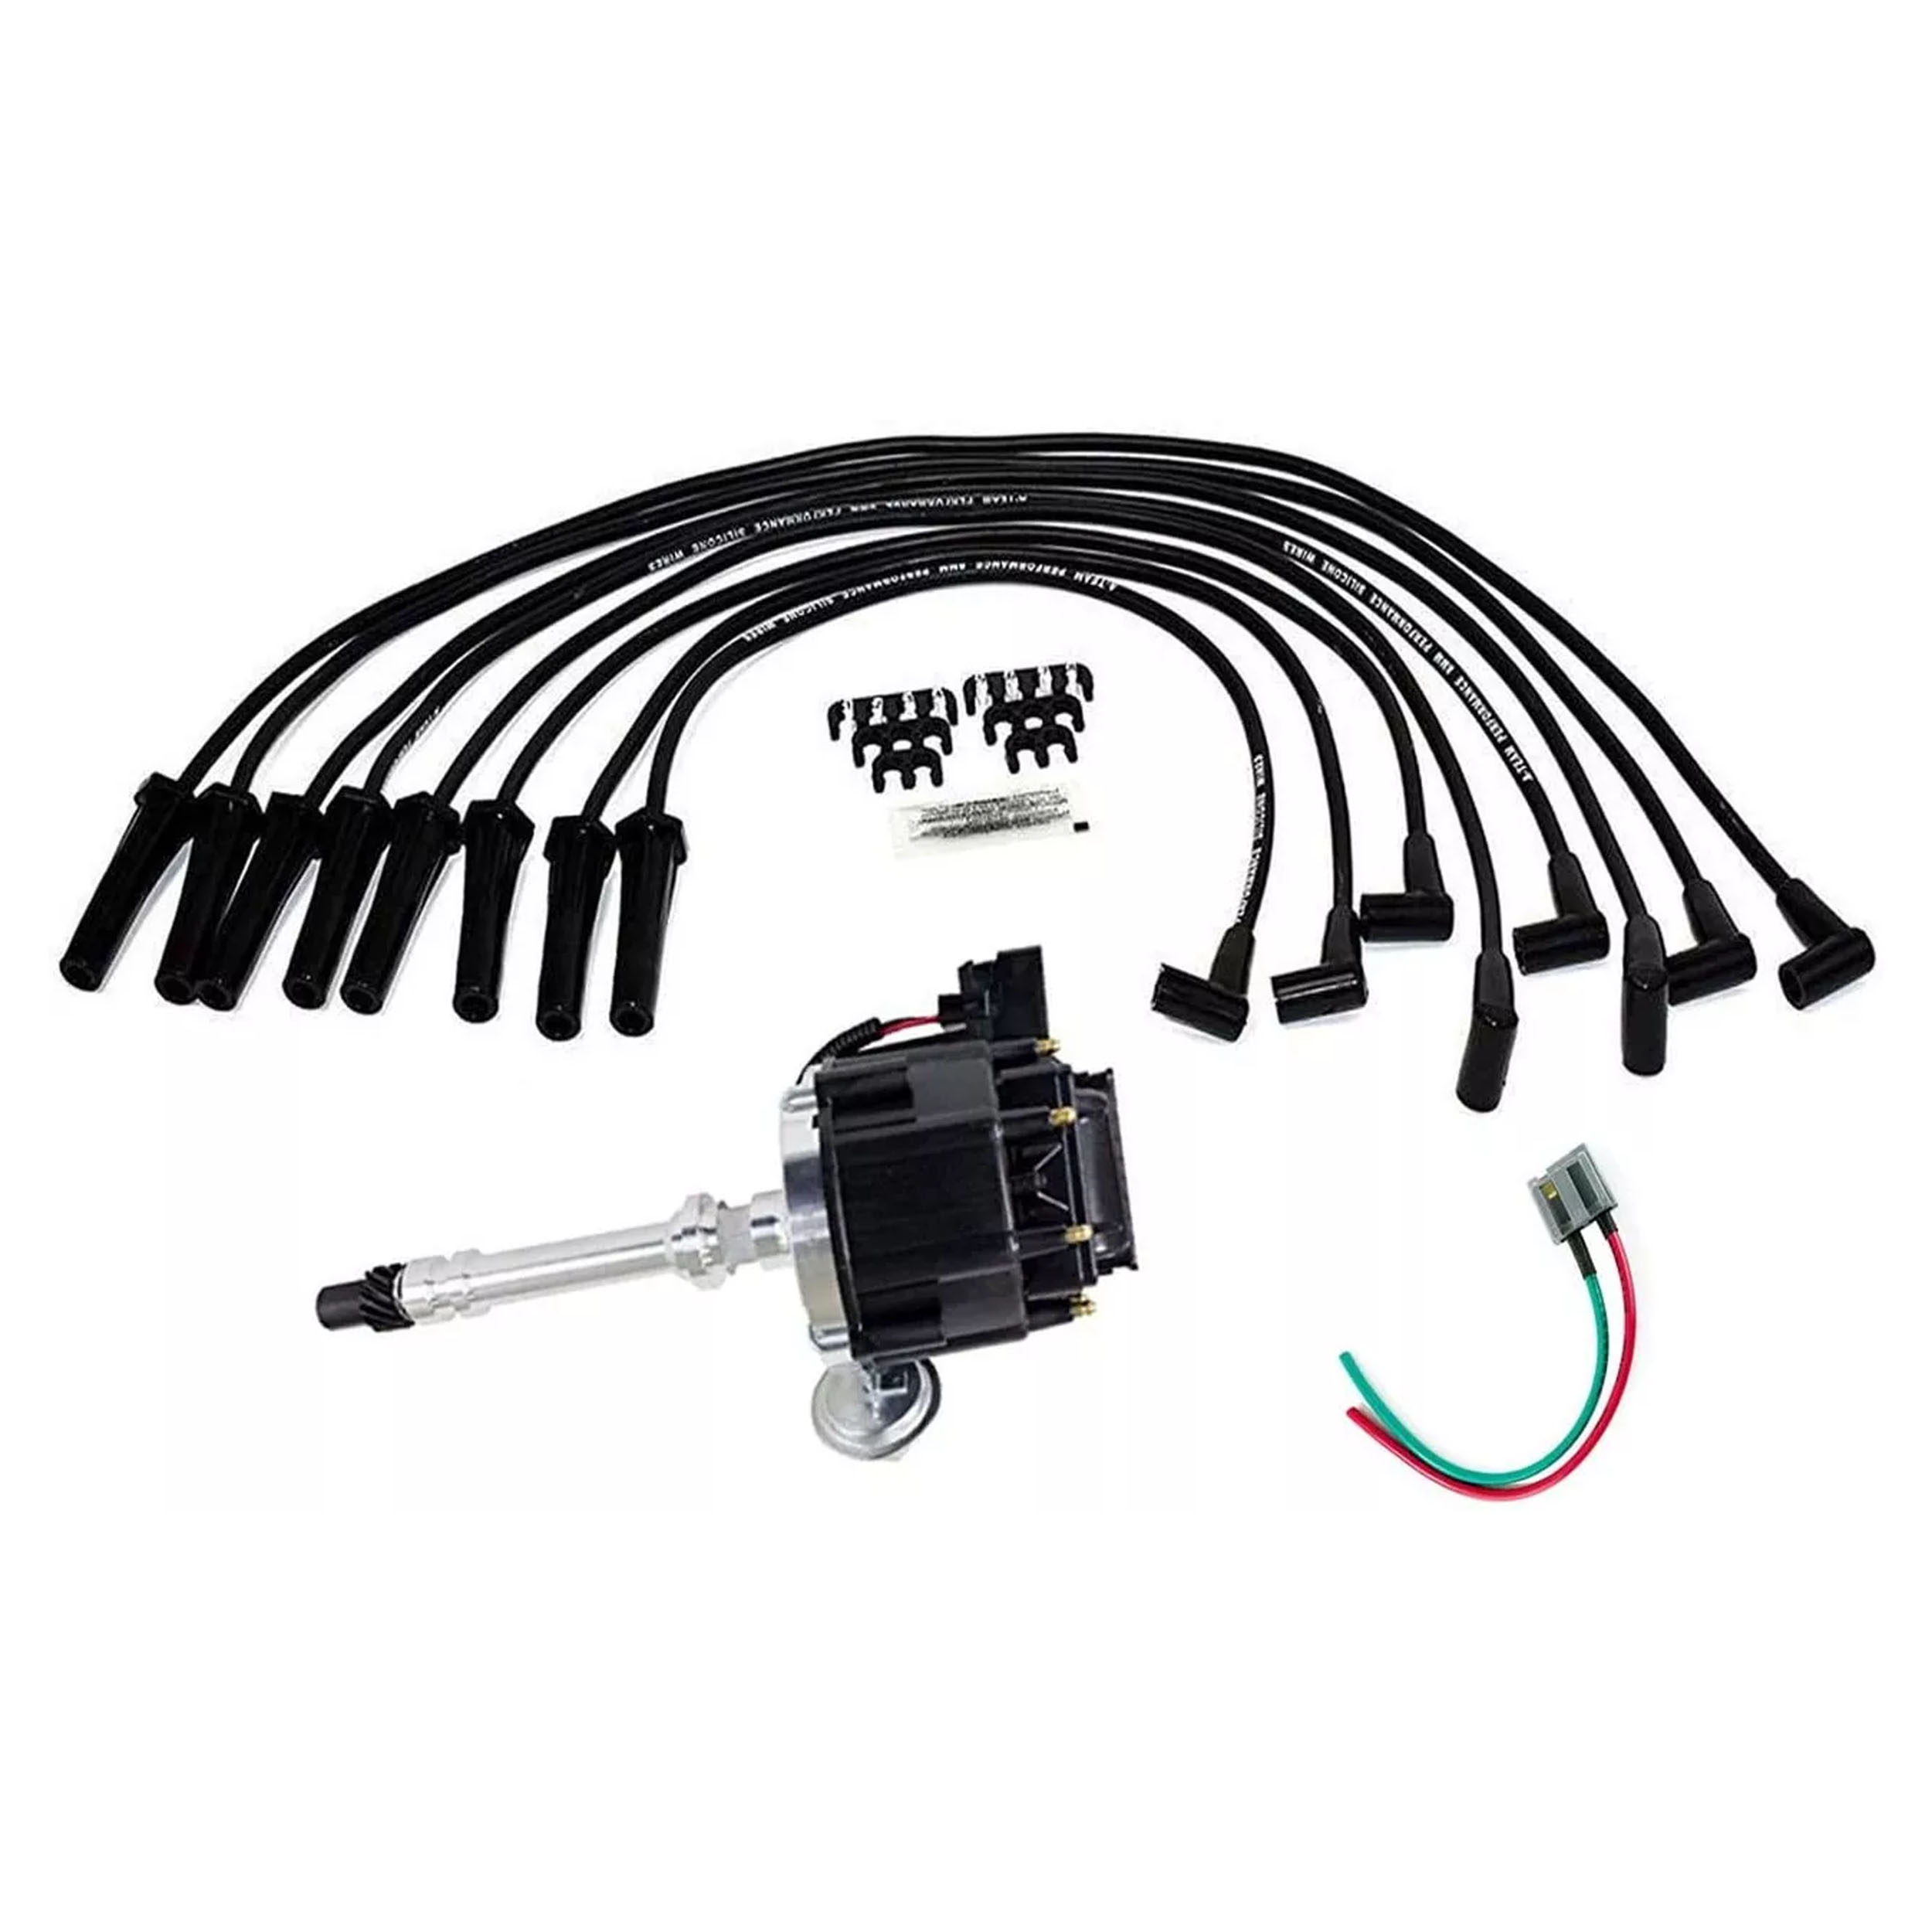 A-Team Performance HEI Distributor Black Cap with Black Spark Plug Wires  Set and Pigtail Wiring Harness Complete Kit Compatible with Chevrolet Chevy  GM GMC Big Block Chevy BBC 396 427 454Southwest Performance Parts